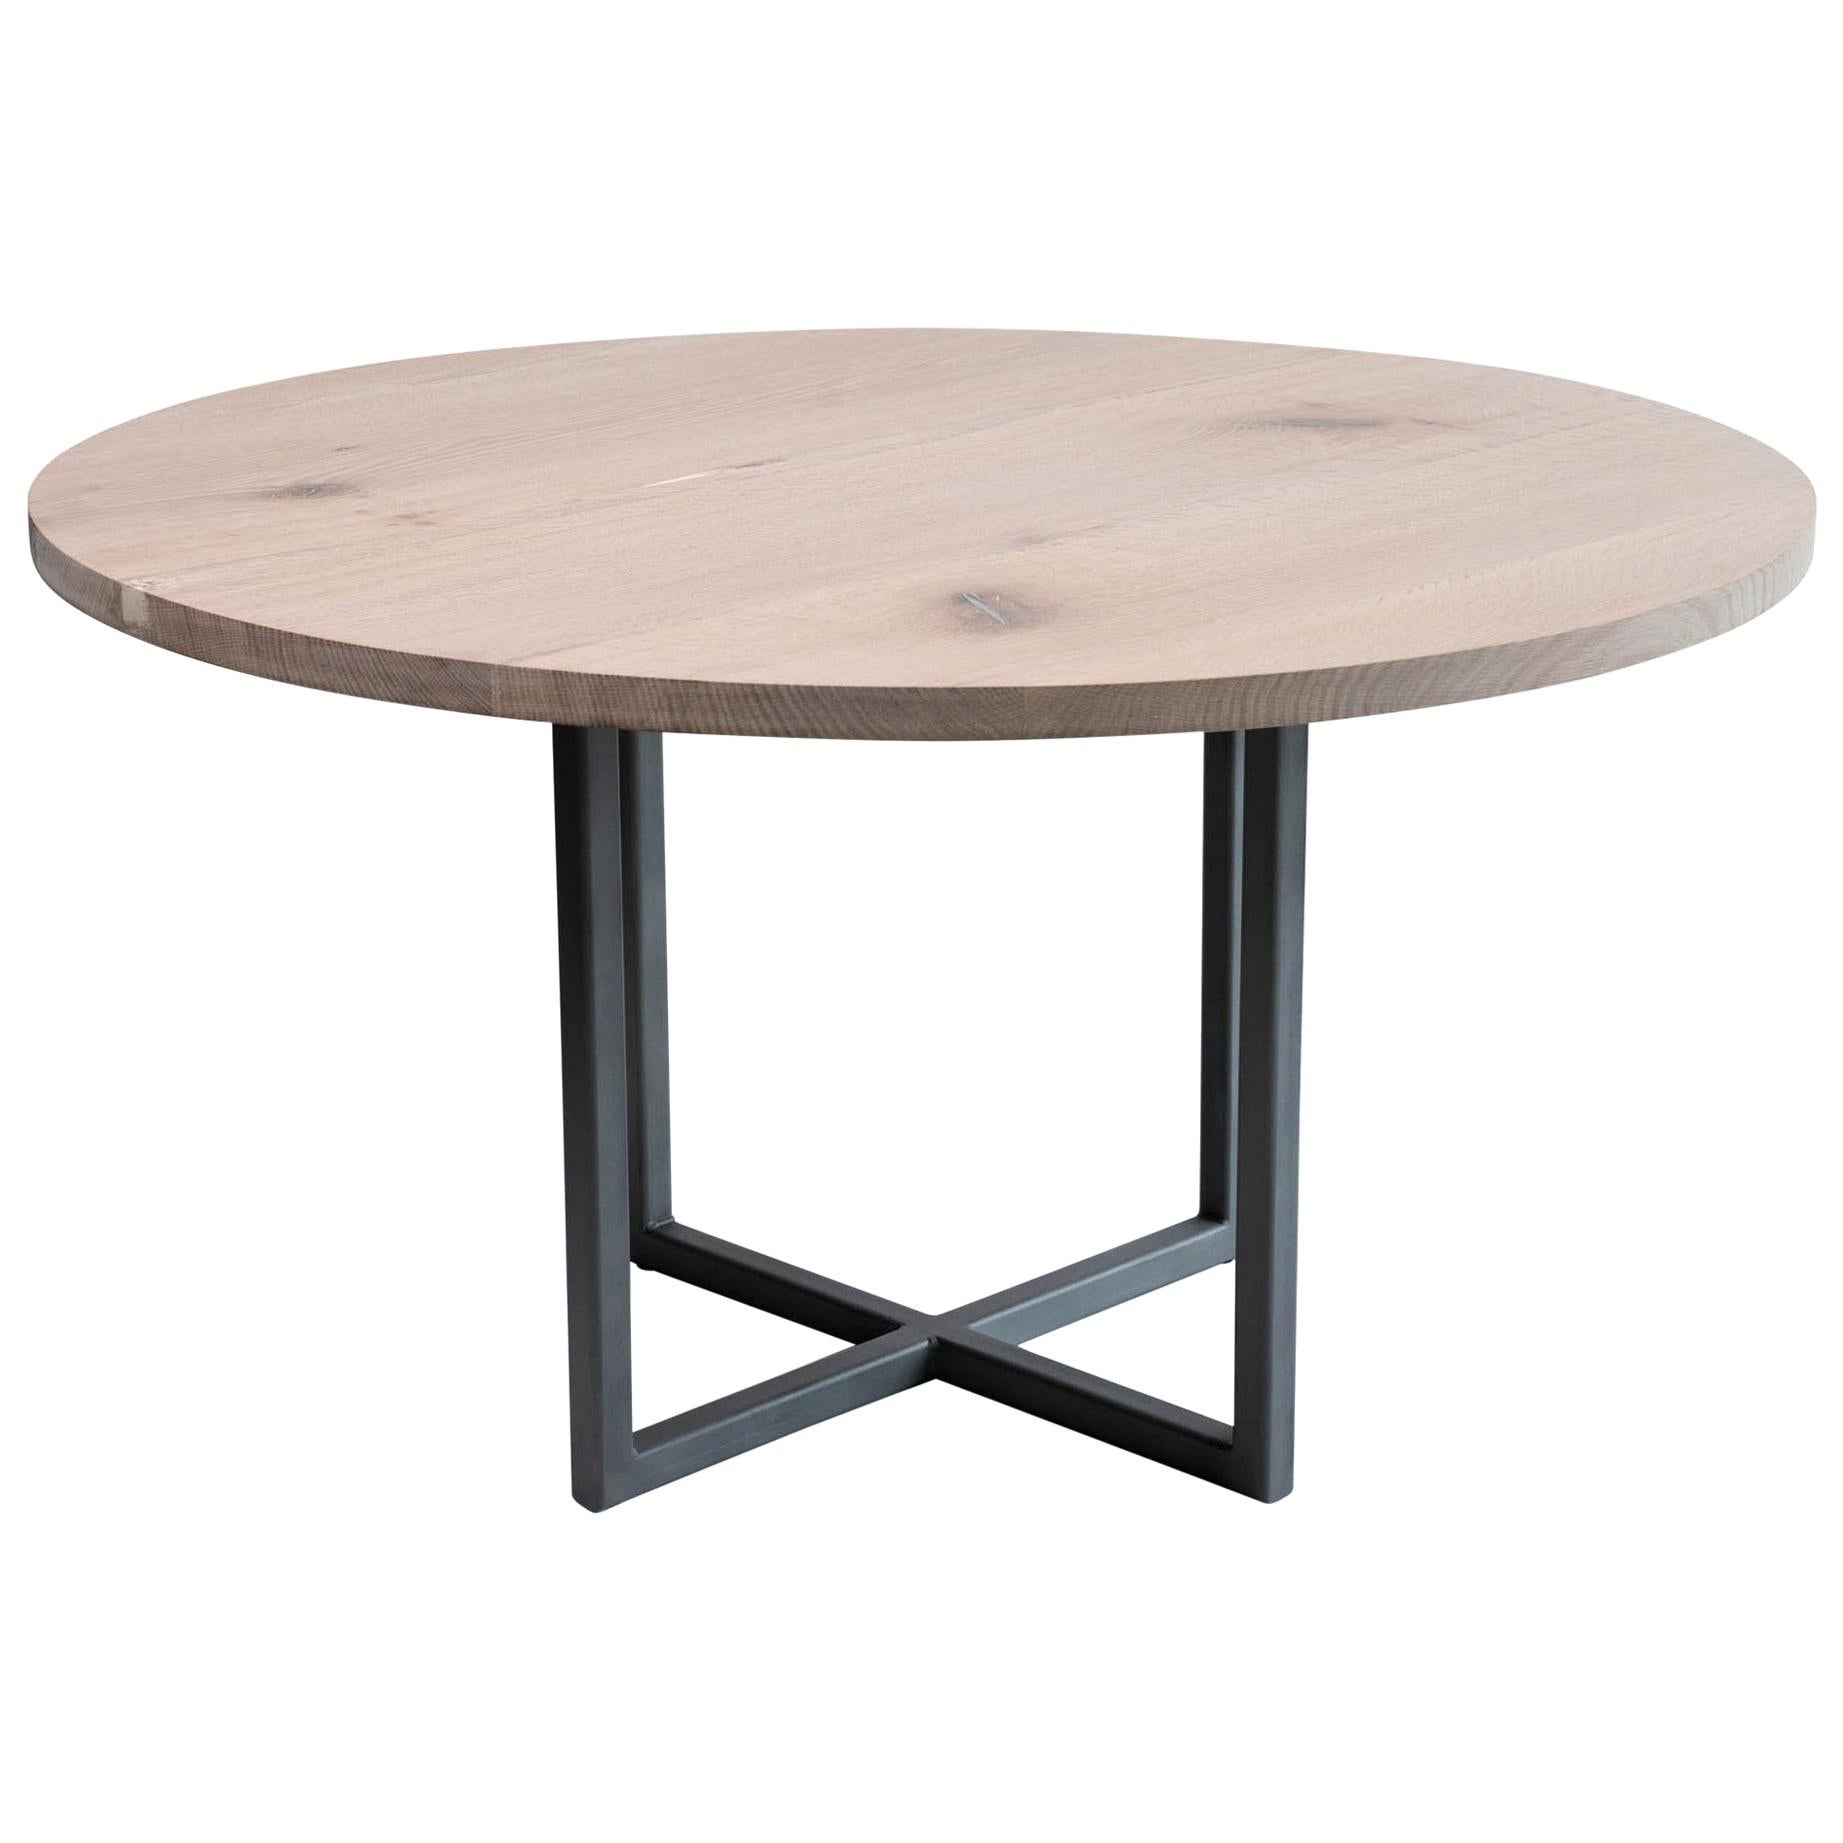 """48"""" Round Dining Table in White Oak and Pewter Inlays Modern Steel Pedestal Base"""